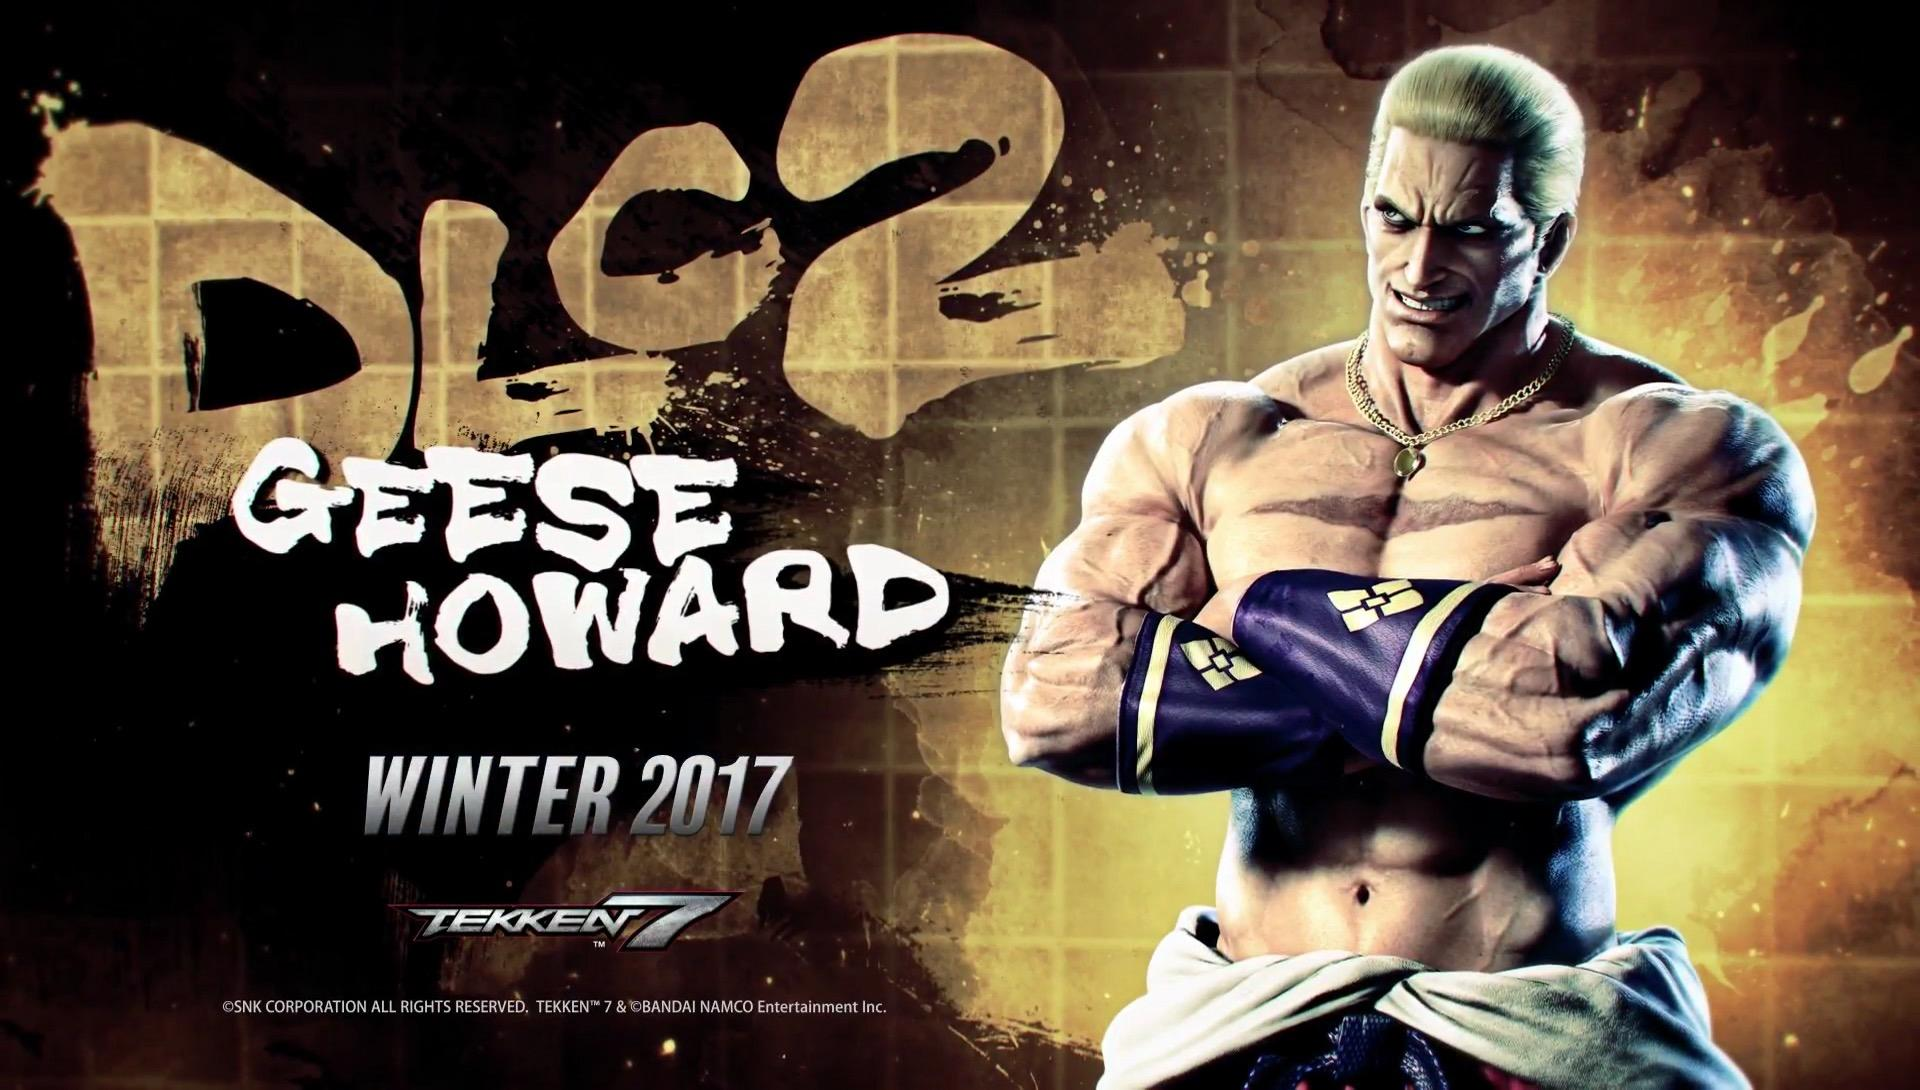 Tekken 7's Next Add-On Character is Geese Howard